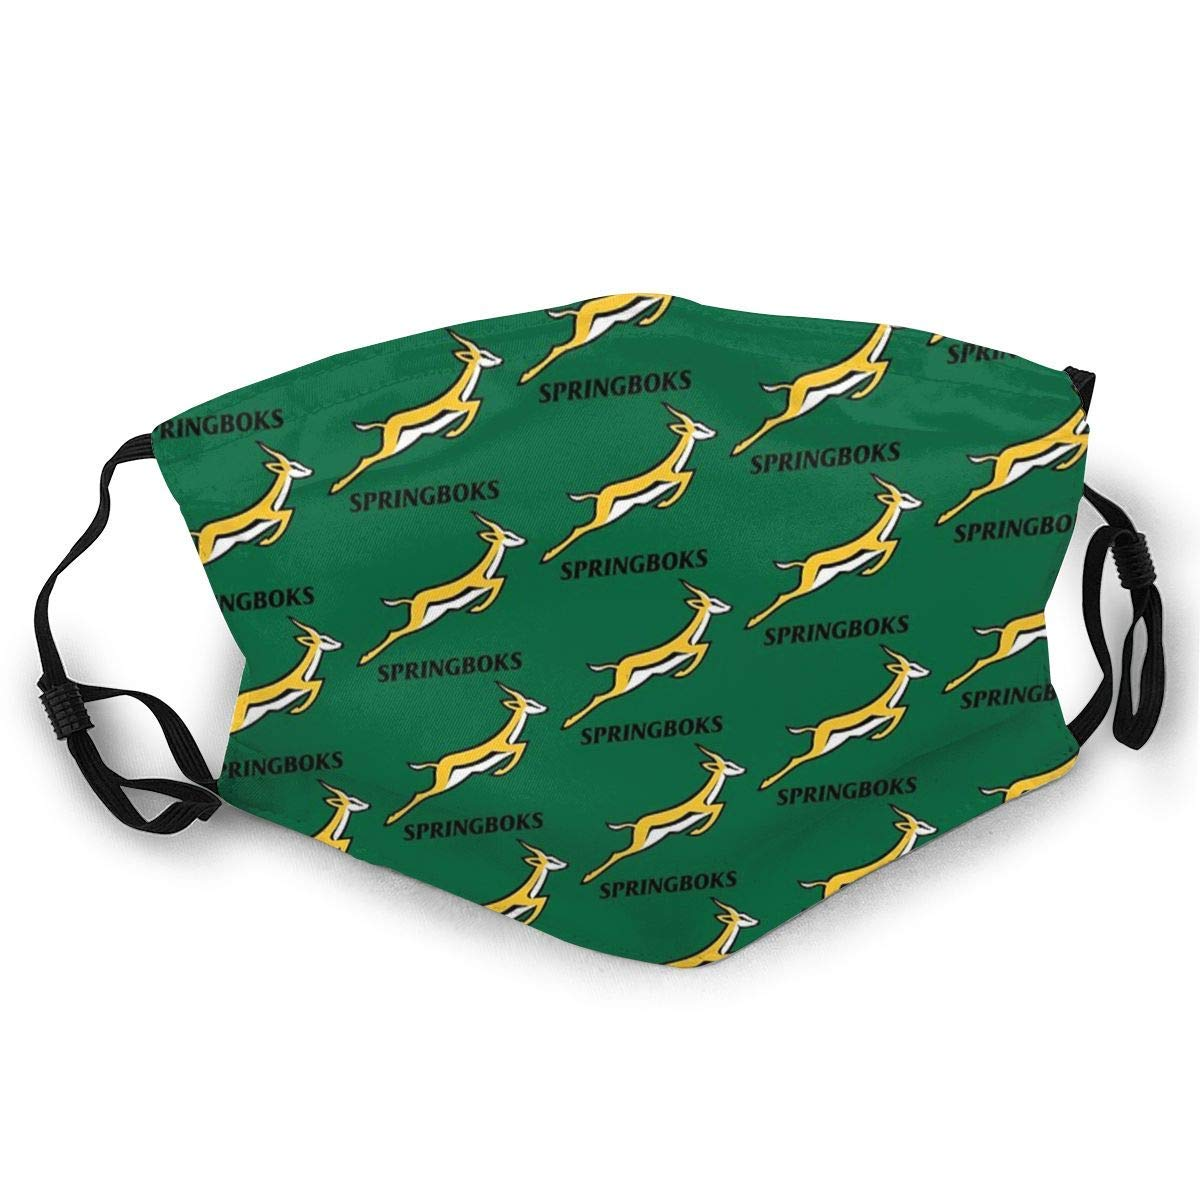 Comfortable Printed Facial decorations for adult Springboks Rugby Sun-Proof Fashion BandaHeadwear for Fishing